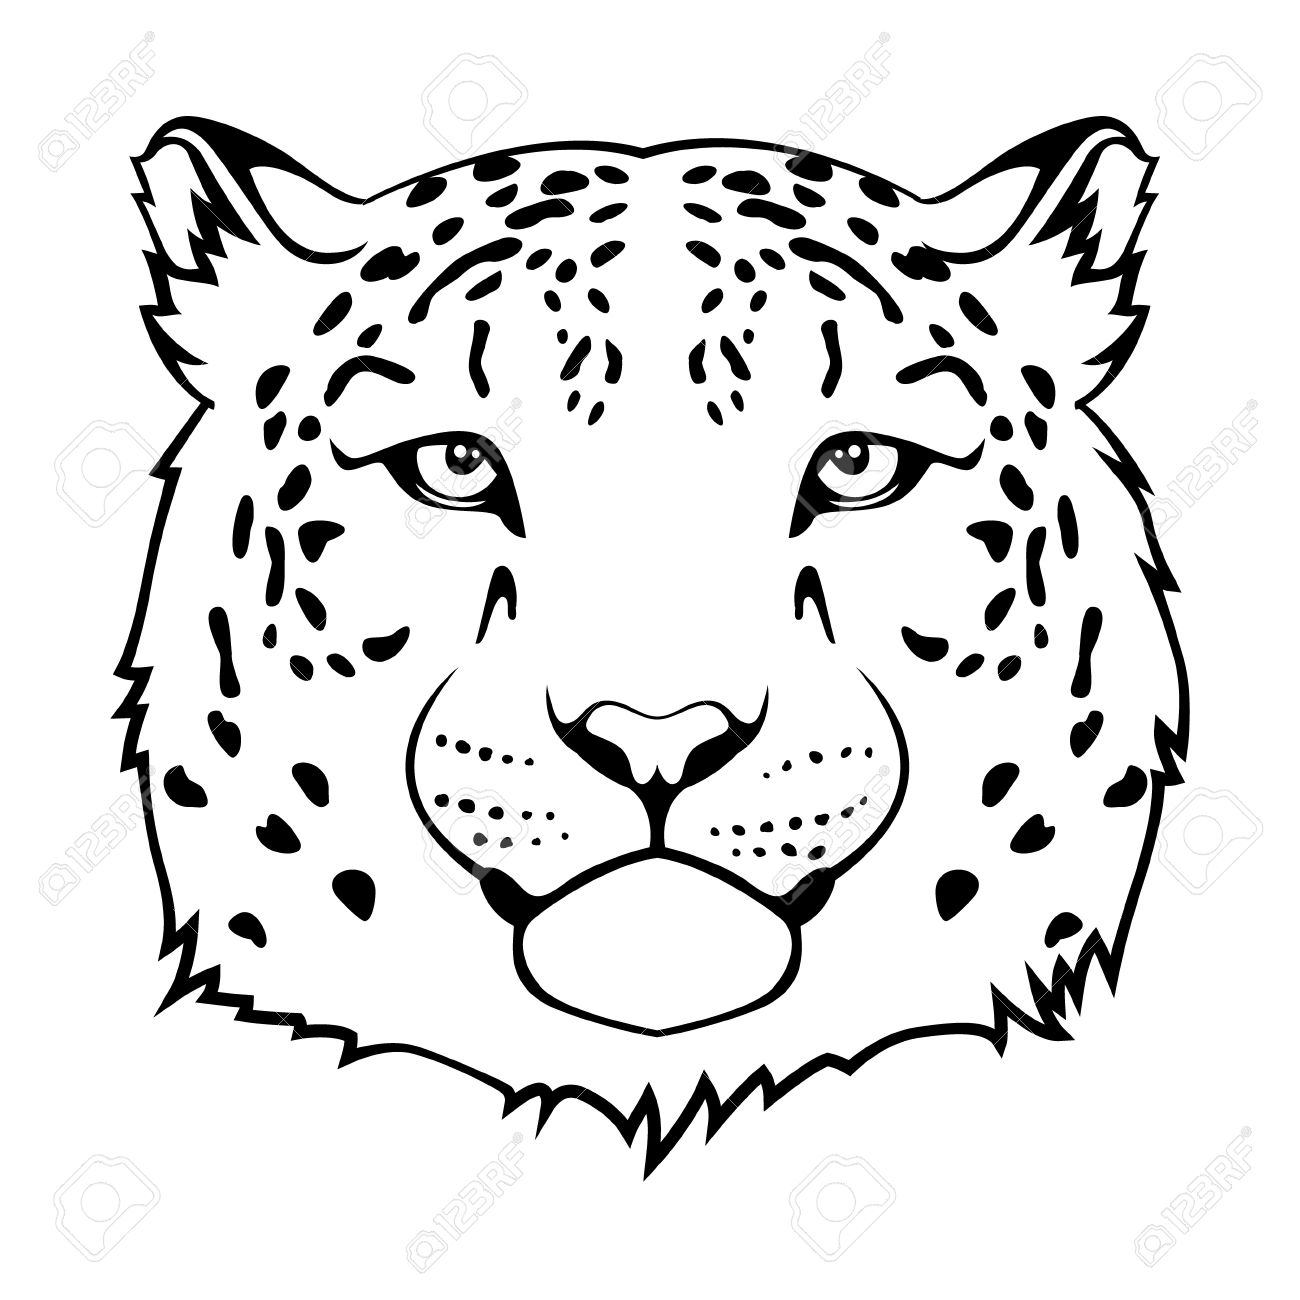 Snow Leopard clipart #3, Download drawings